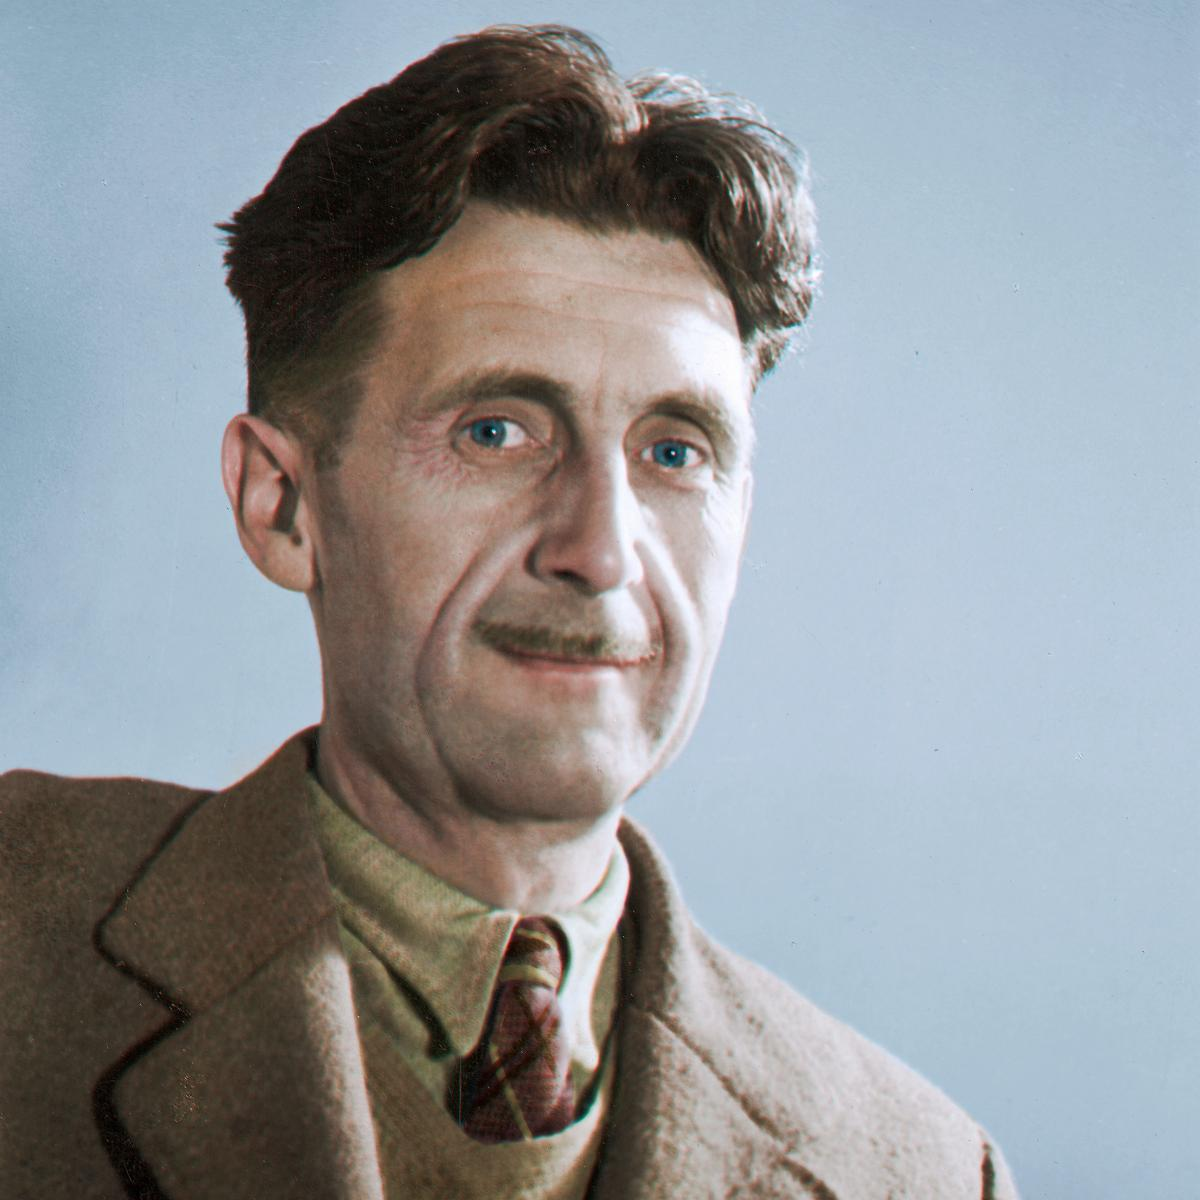 George Orwell portrait